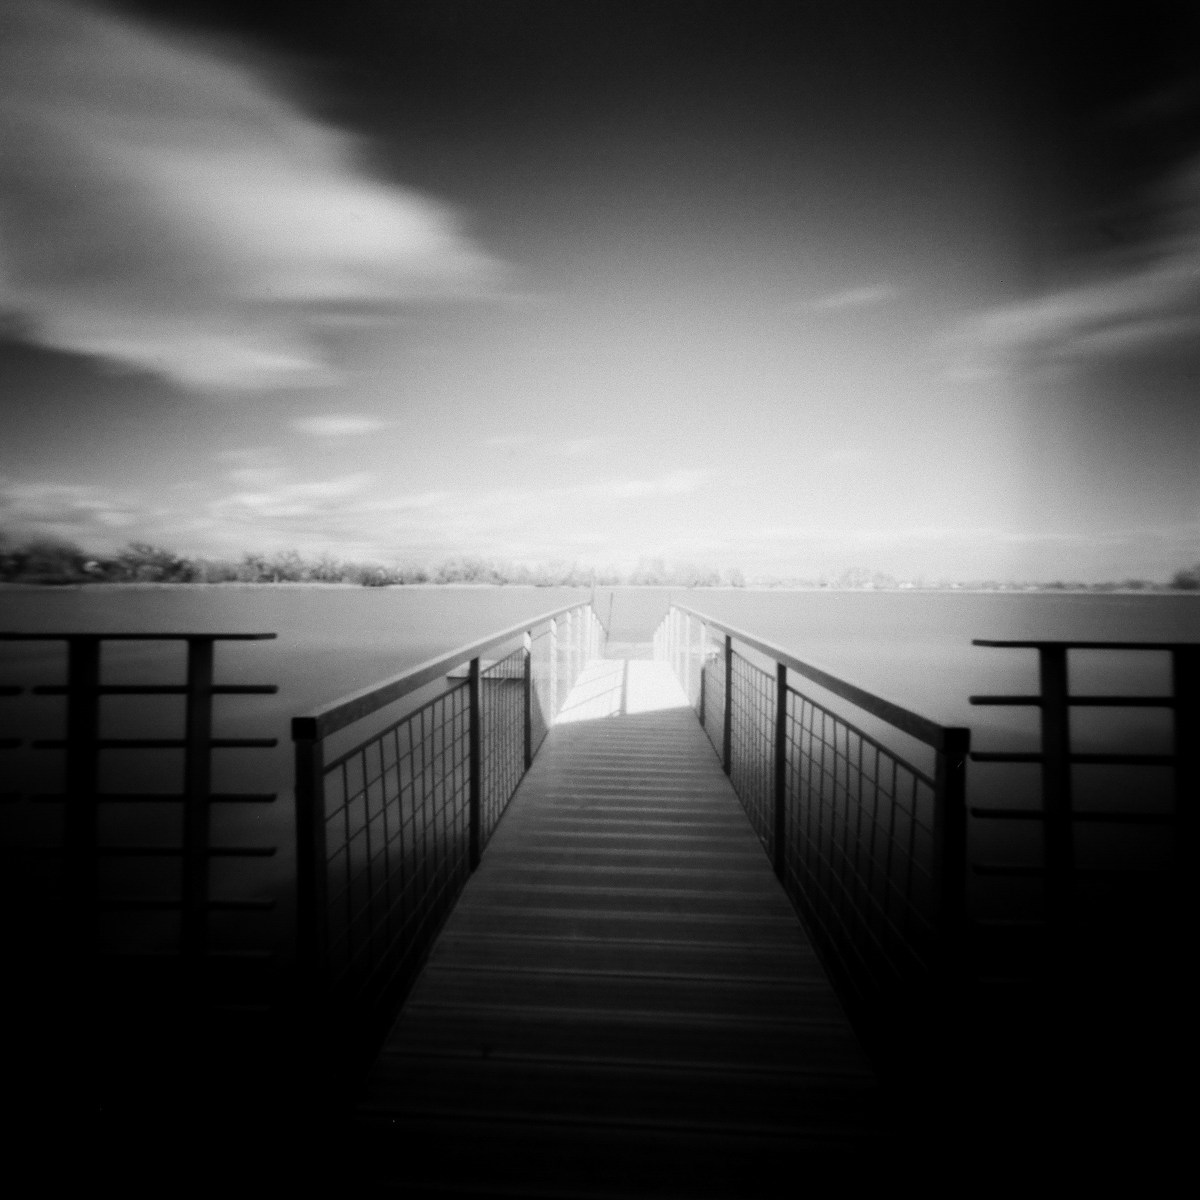 5 Frames With... ILFORD Delta 100 Professional (EI 100 / 120 format / Reality So Subtle 6X6F Pinhole) - by Kathleen E. Johnson